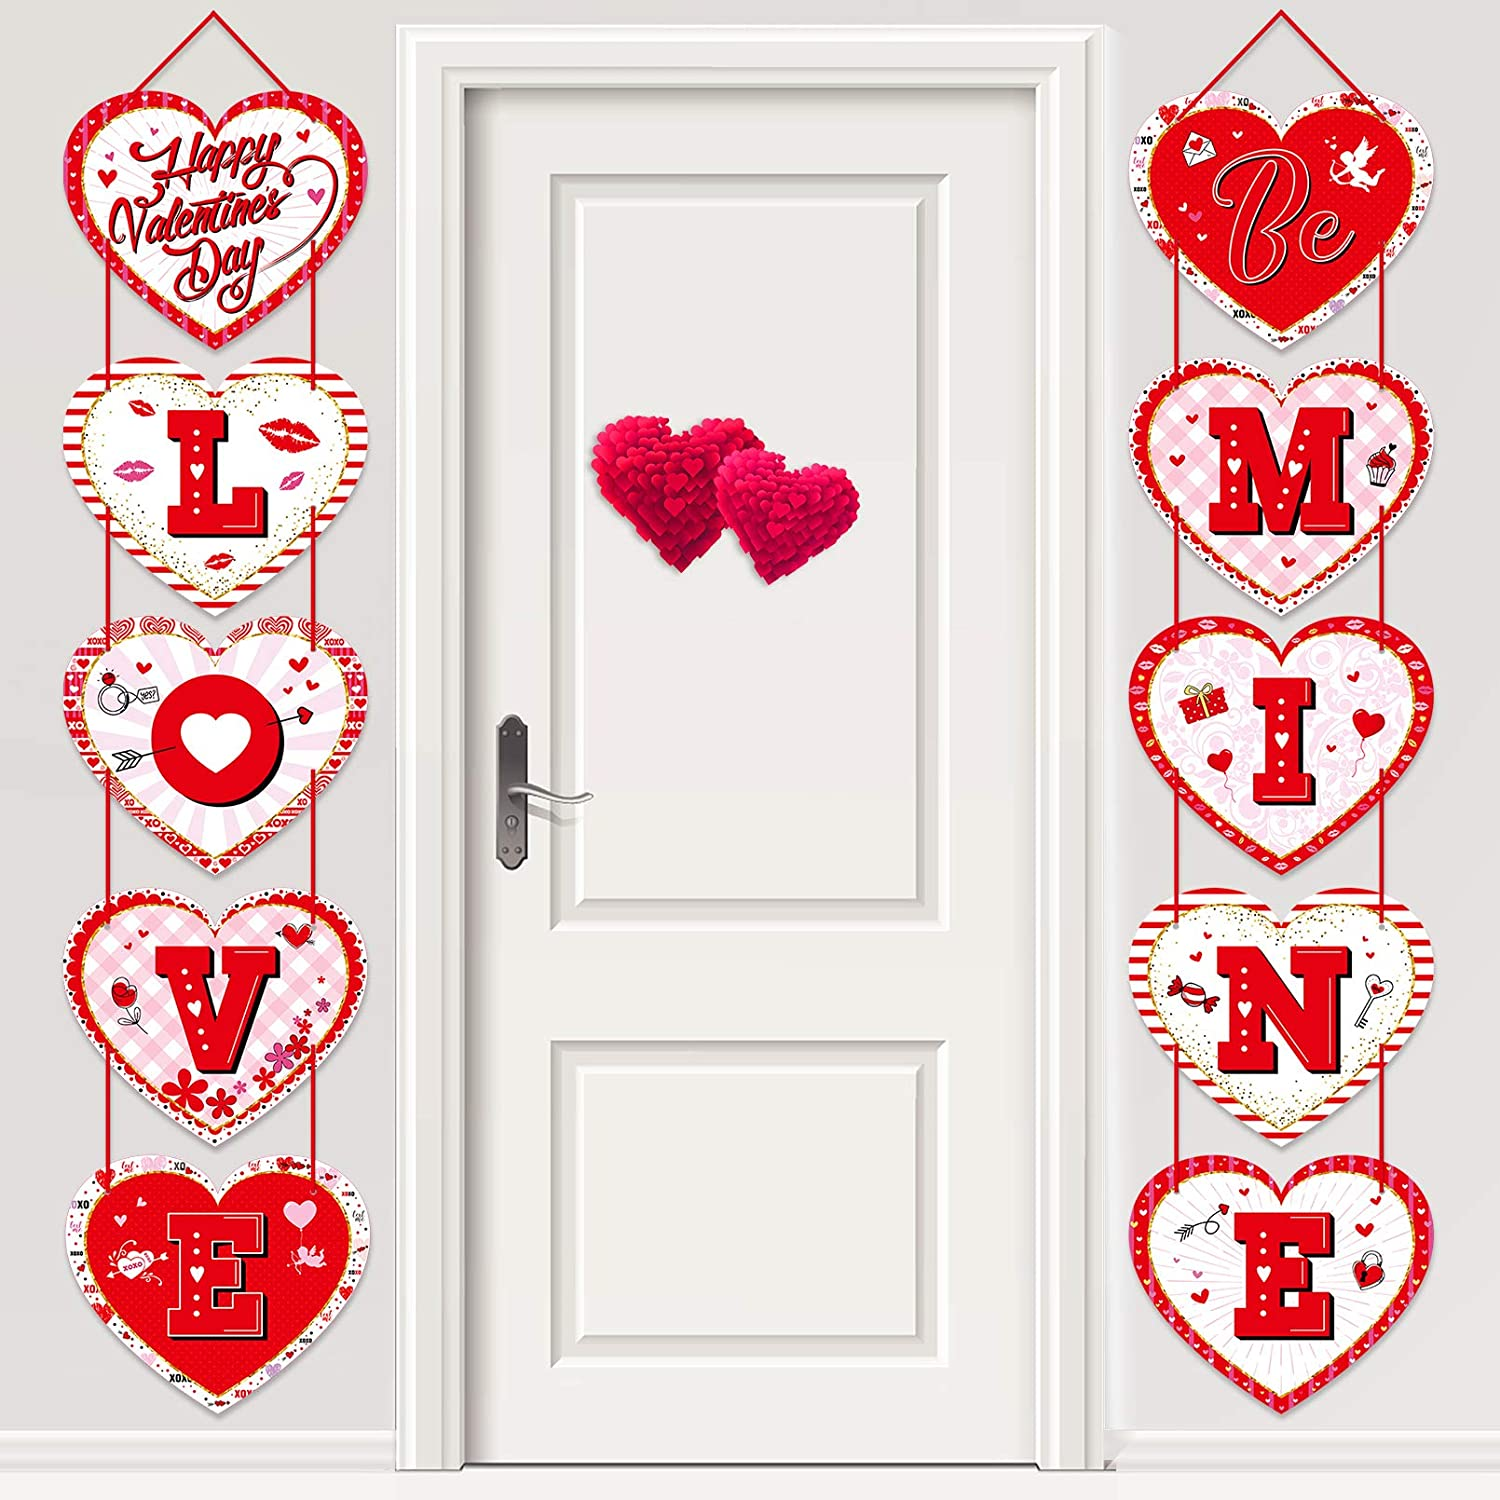 Love Be Mine Happy Valentines day decorations Door Banner Valentines Day Heart Banner Hanging Candy Heart Sign for Indoor Outdoor Wedding Engagement Anniversary Party Favor-Red